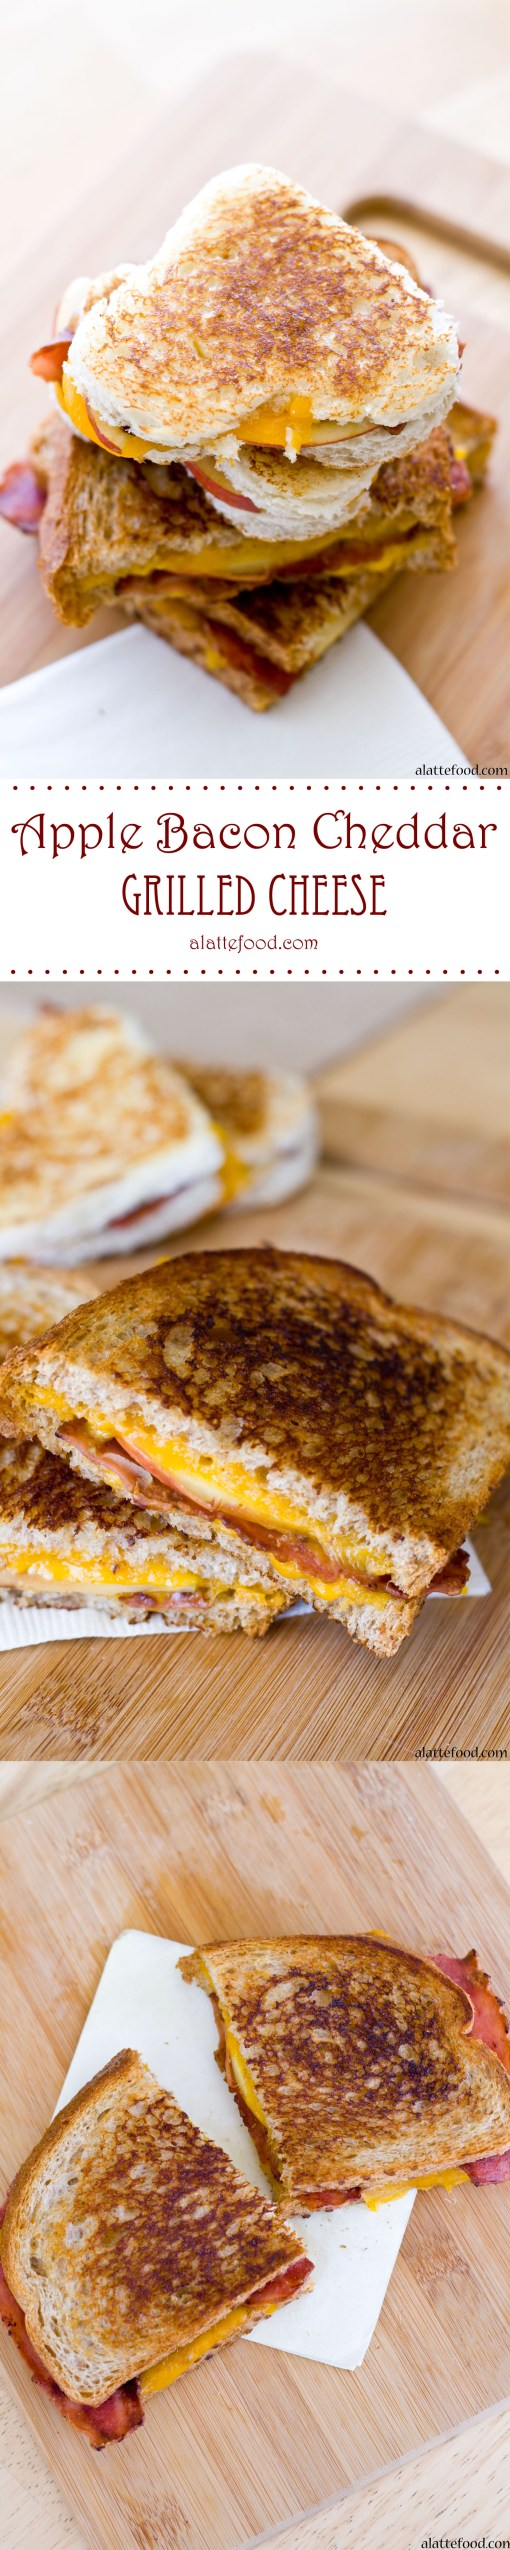 Apple Bacon and Cheddar Grilled Cheese | A Latte Food